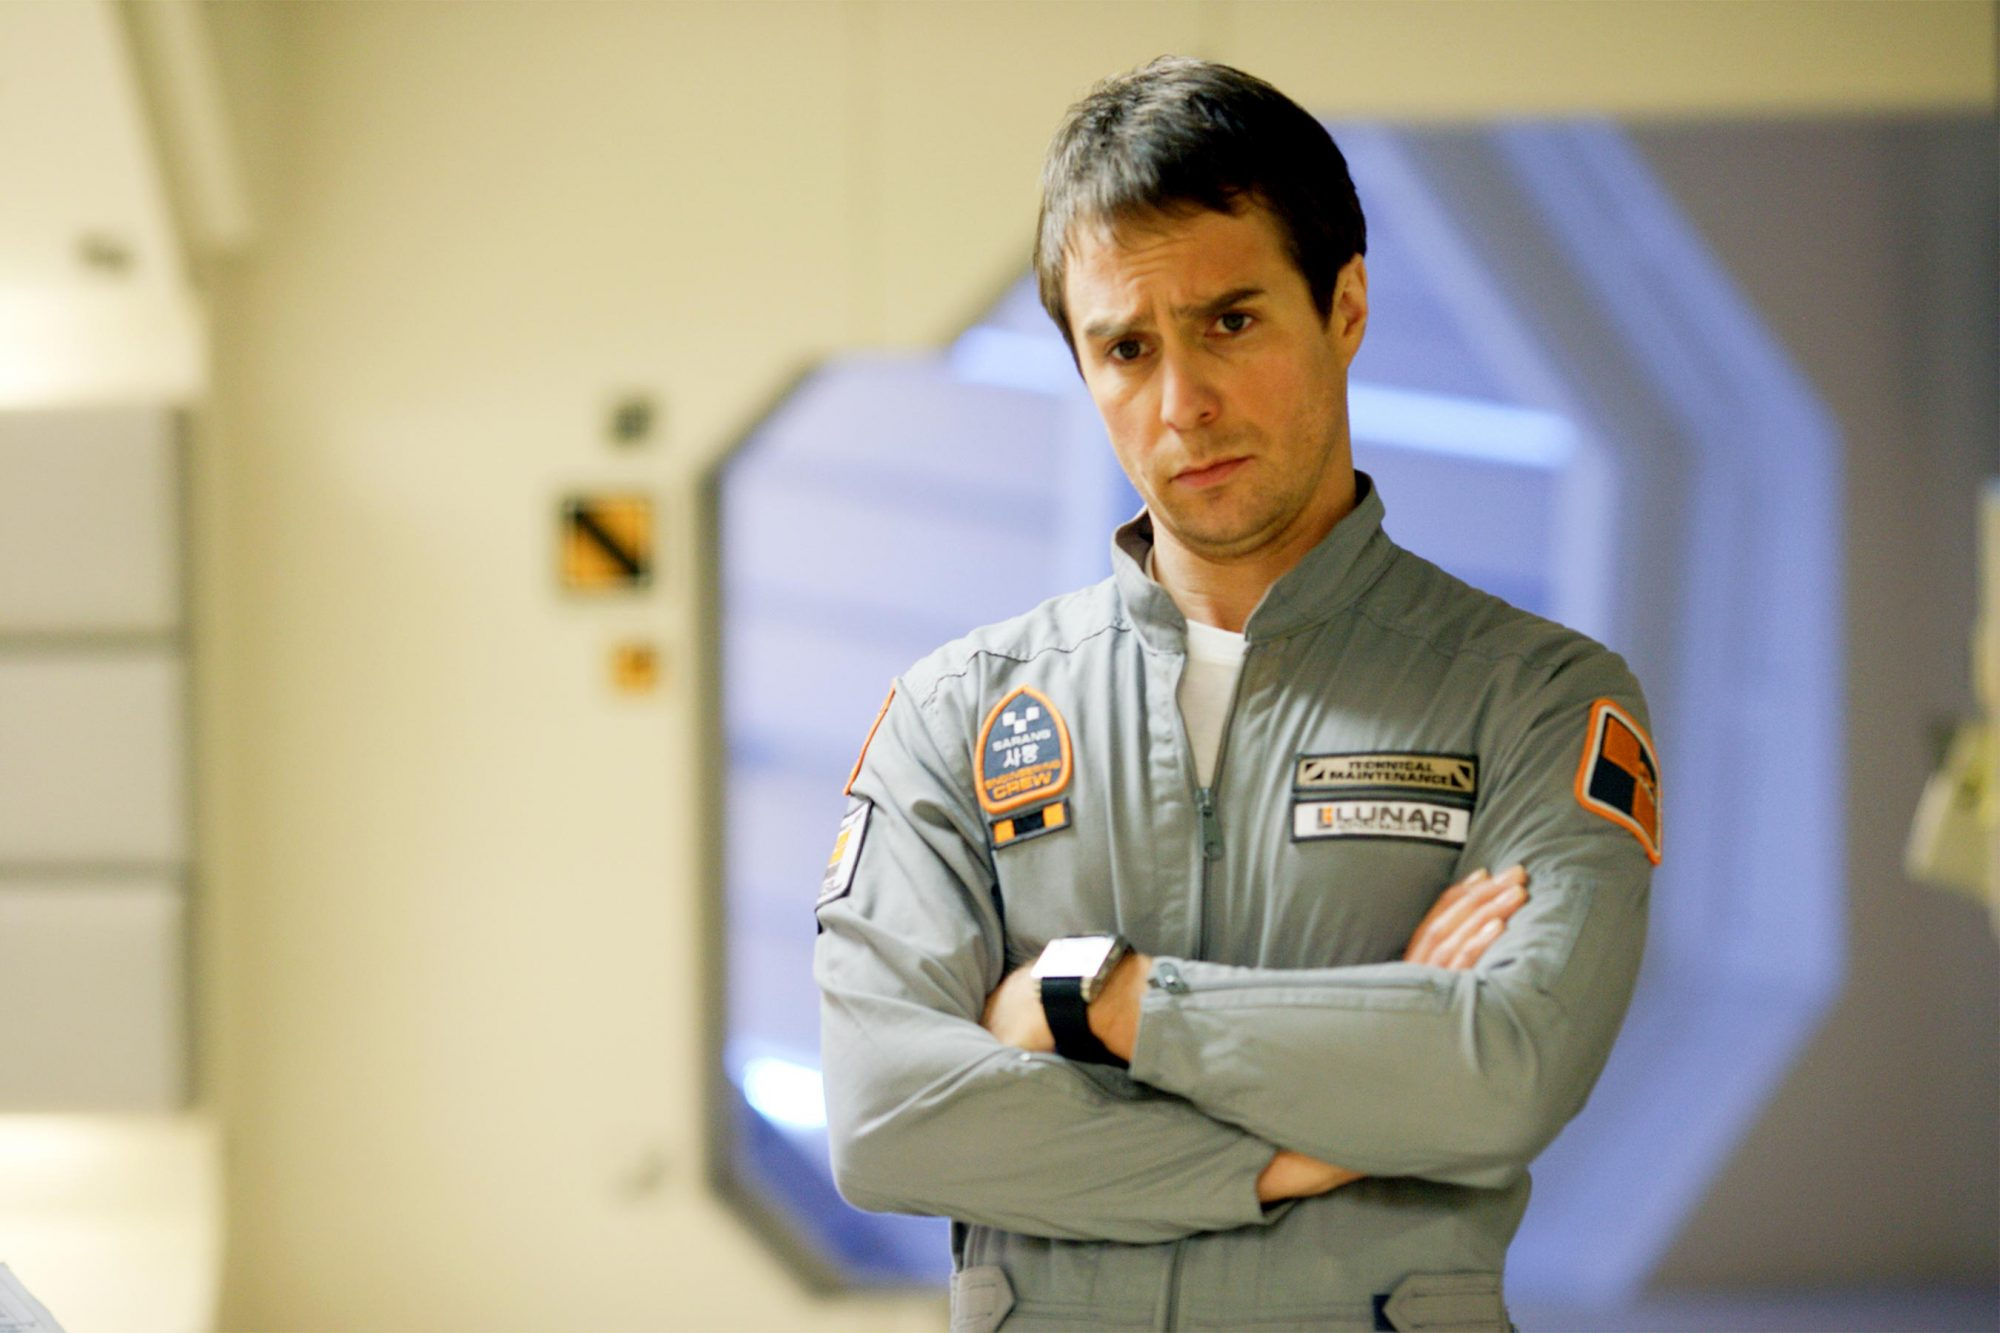 MOON, Sam Rockwell, 2009. PH: Mark Tille/©Sony Pictures Classics/Courtesy Everett Collection